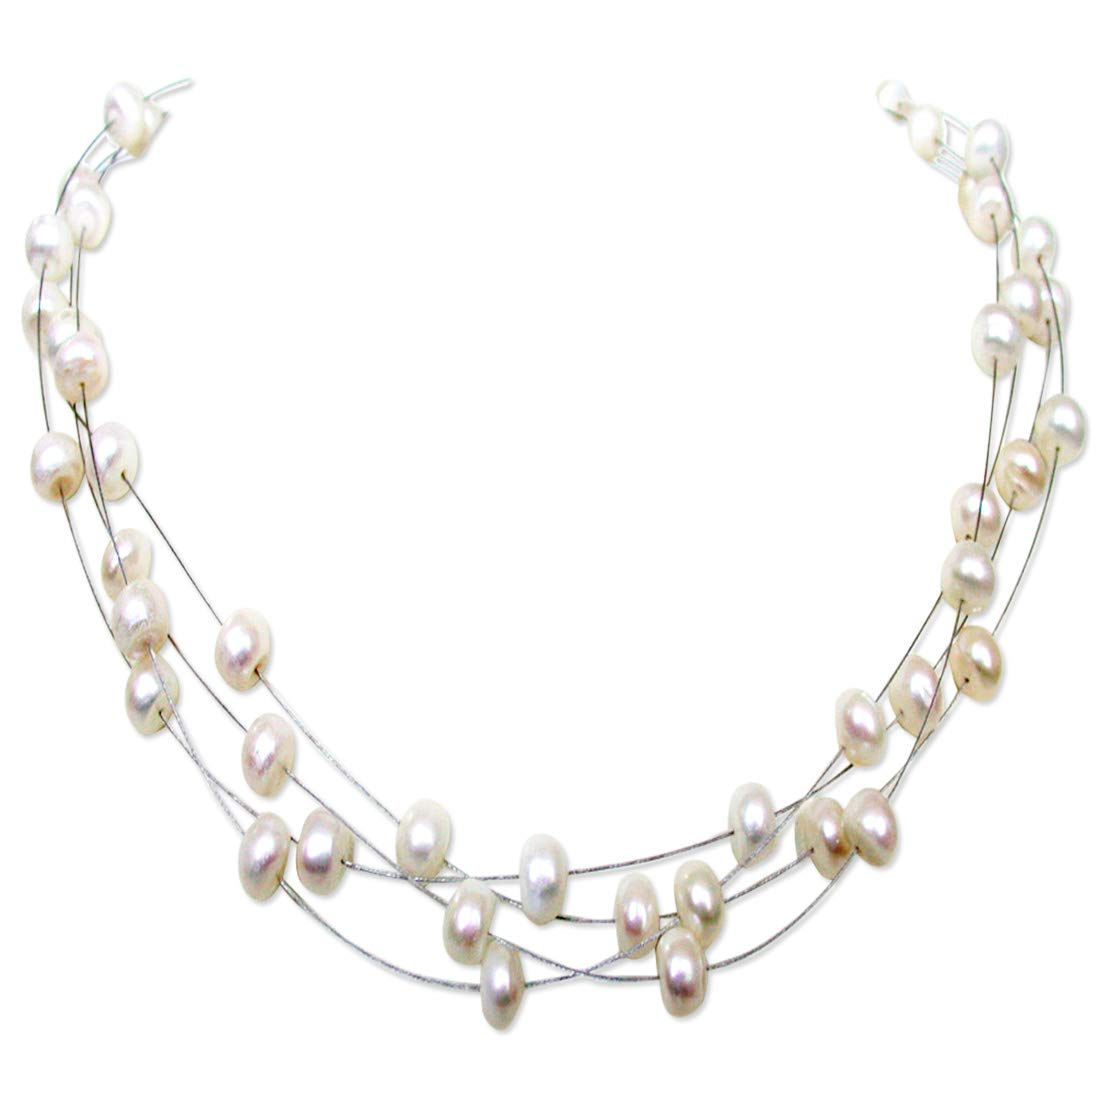 Indulge - 4 Line Real Freshwater Pearl Wire Style Necklace for Women (SN186)